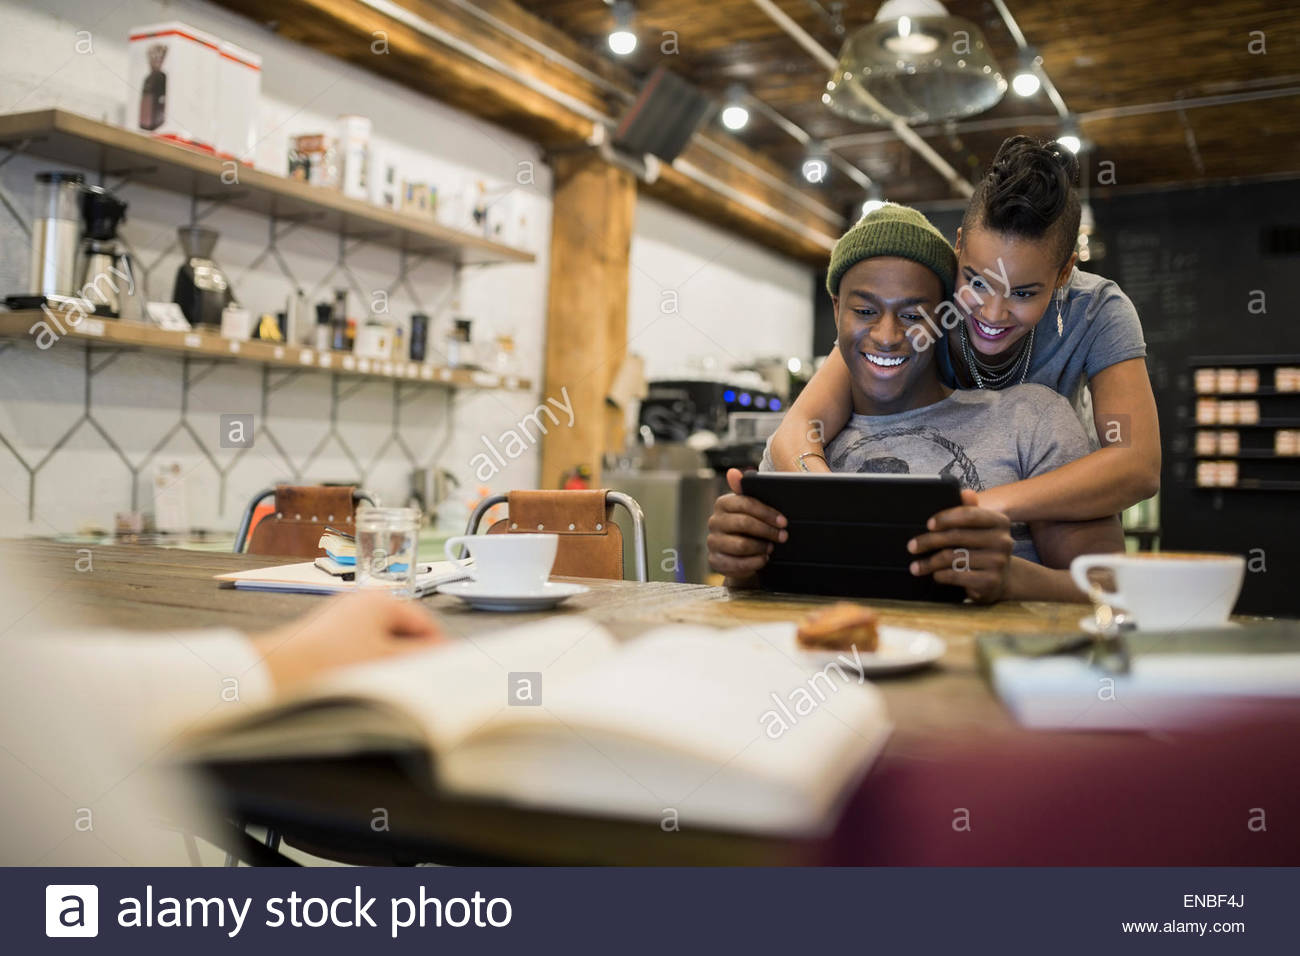 Smiling couple using digital tablet in cafe Stock Photo